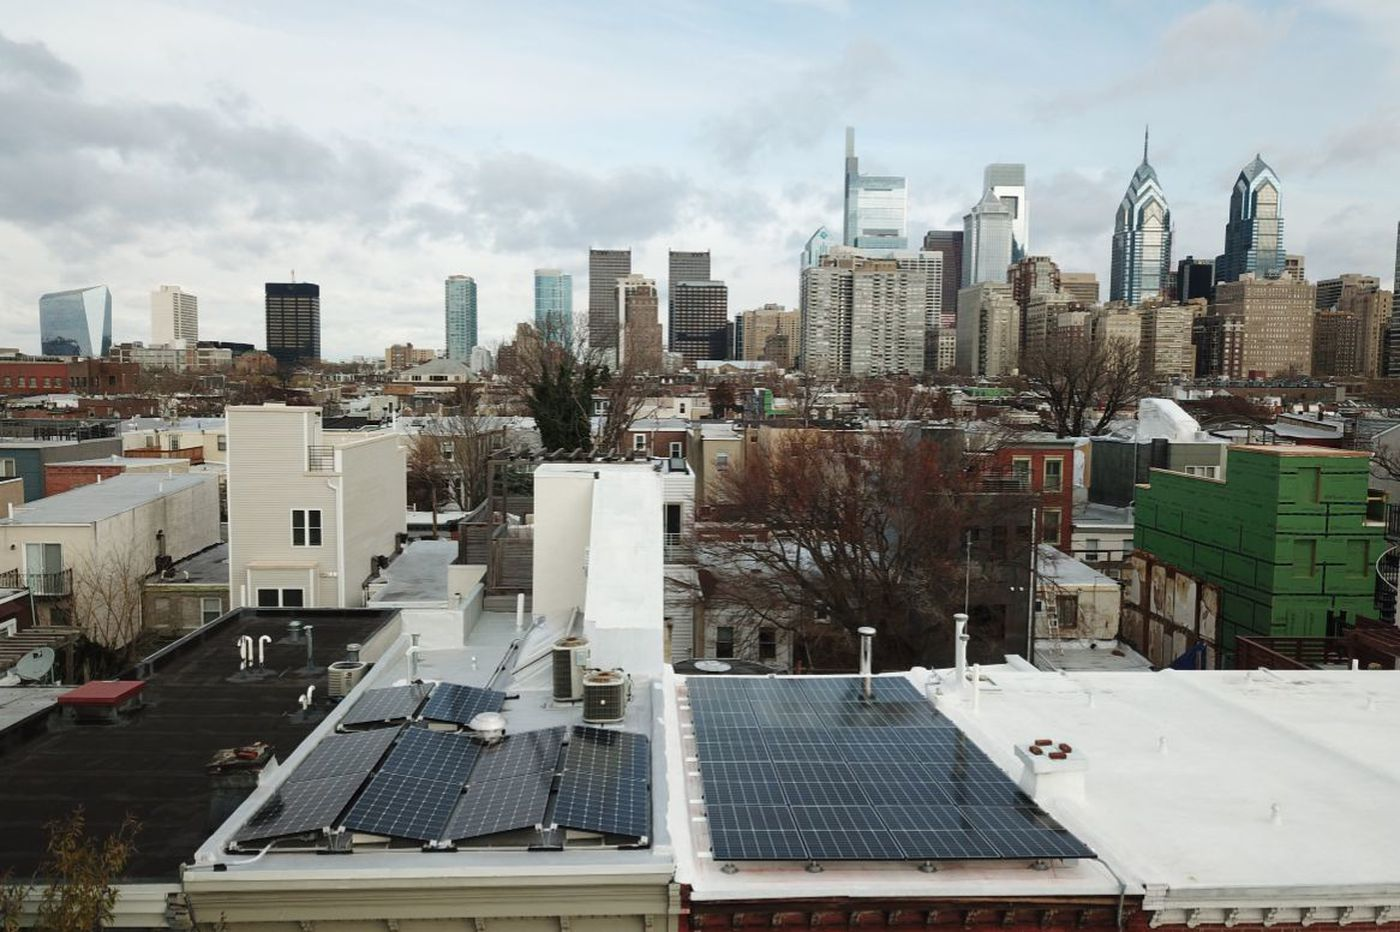 In an effort to increase solar use in homes, Philly cuts red-tape and cost for installers